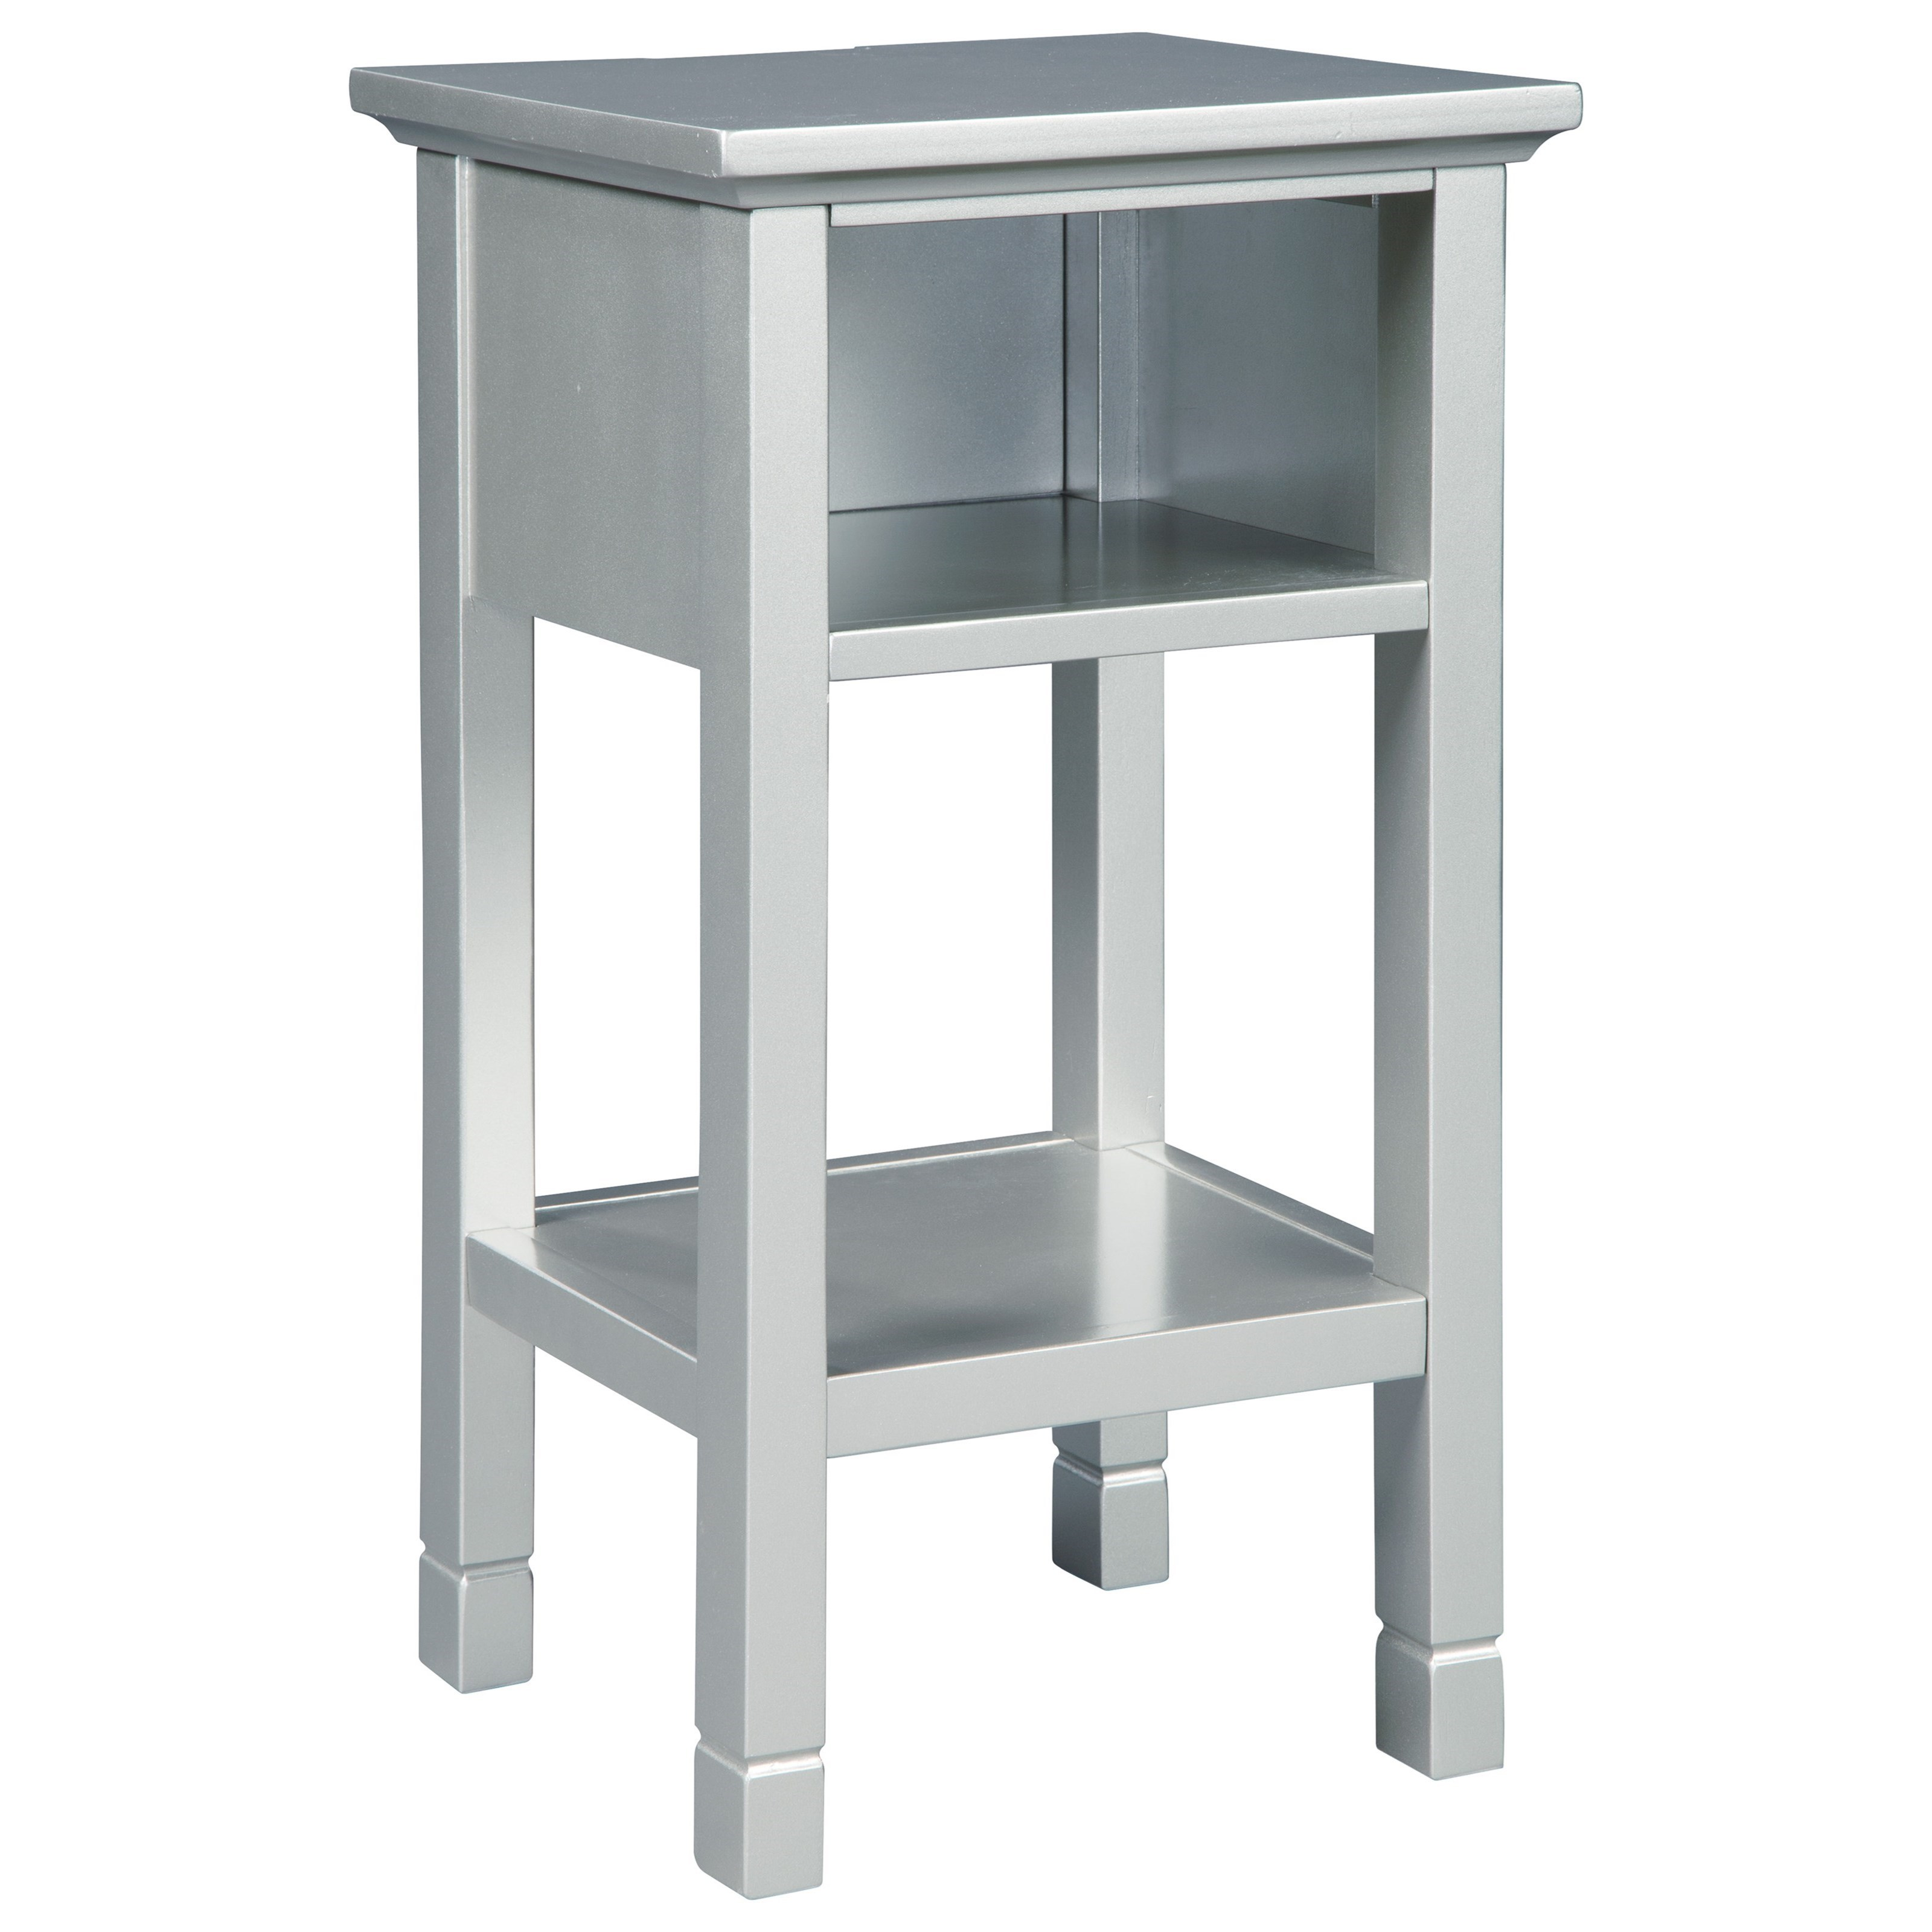 Marnville Accent Table by Benchcraft at Virginia Furniture Market